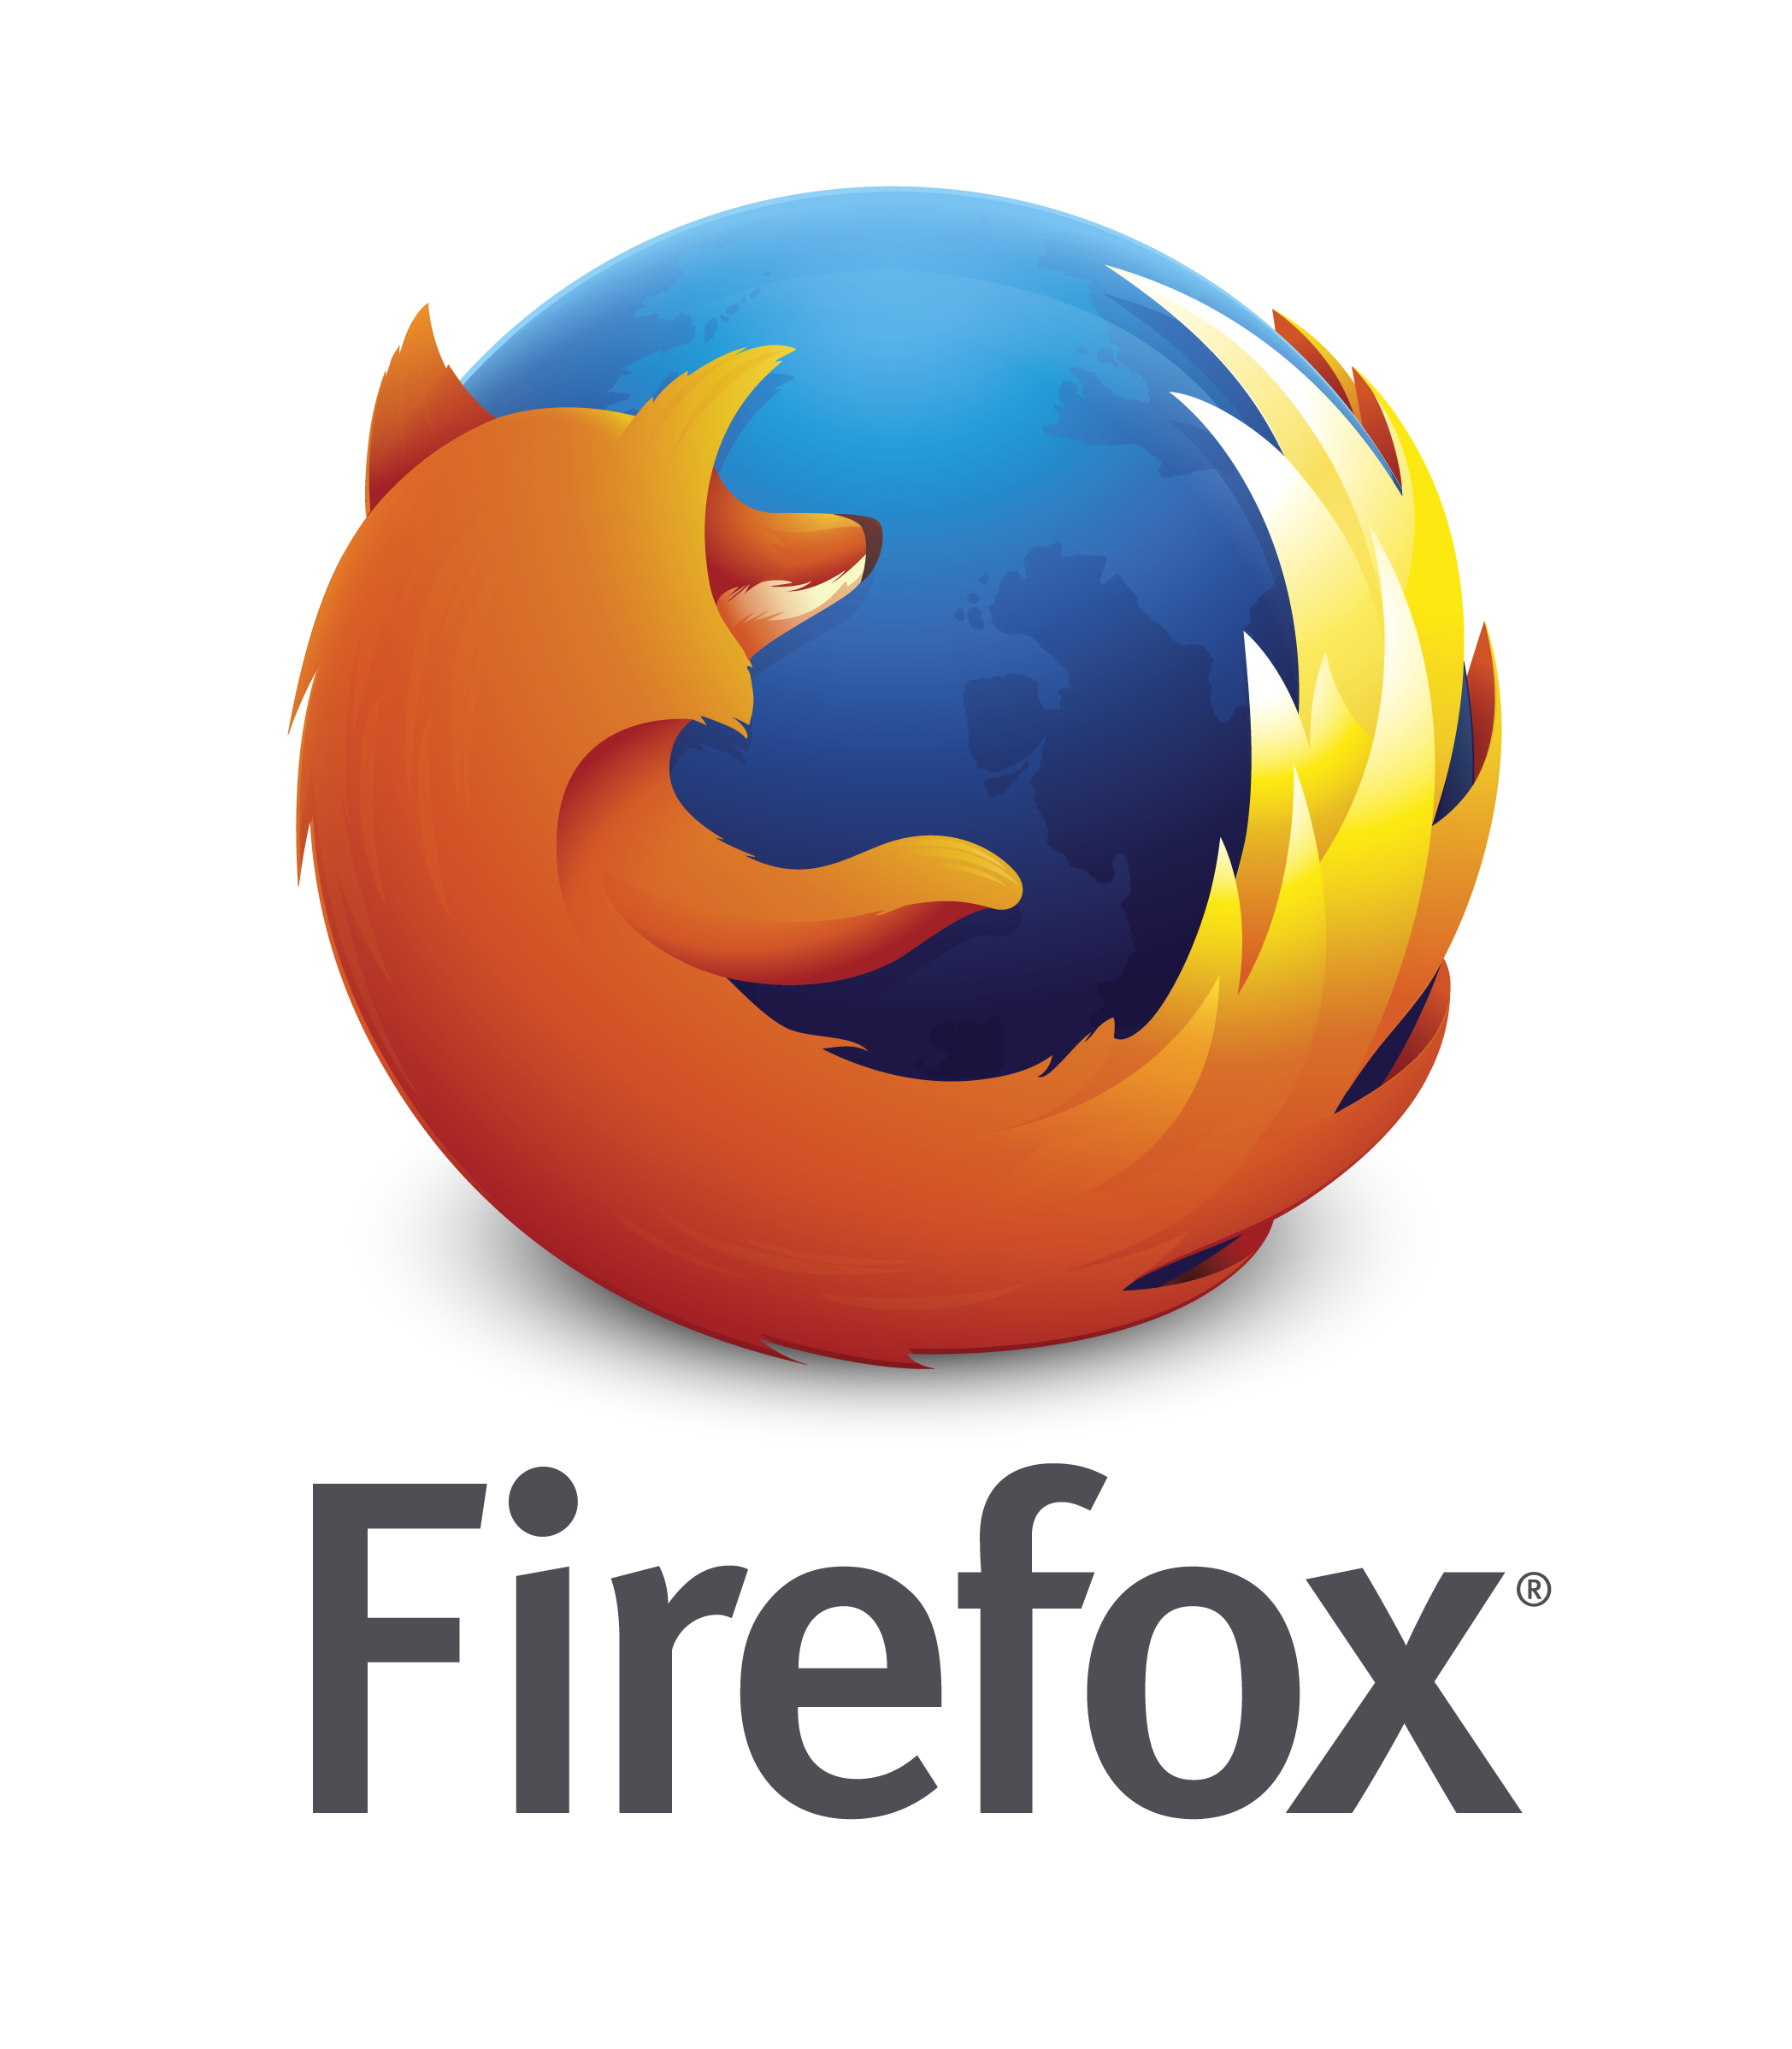 Download this high resolution Firefox Transparent PNG Image